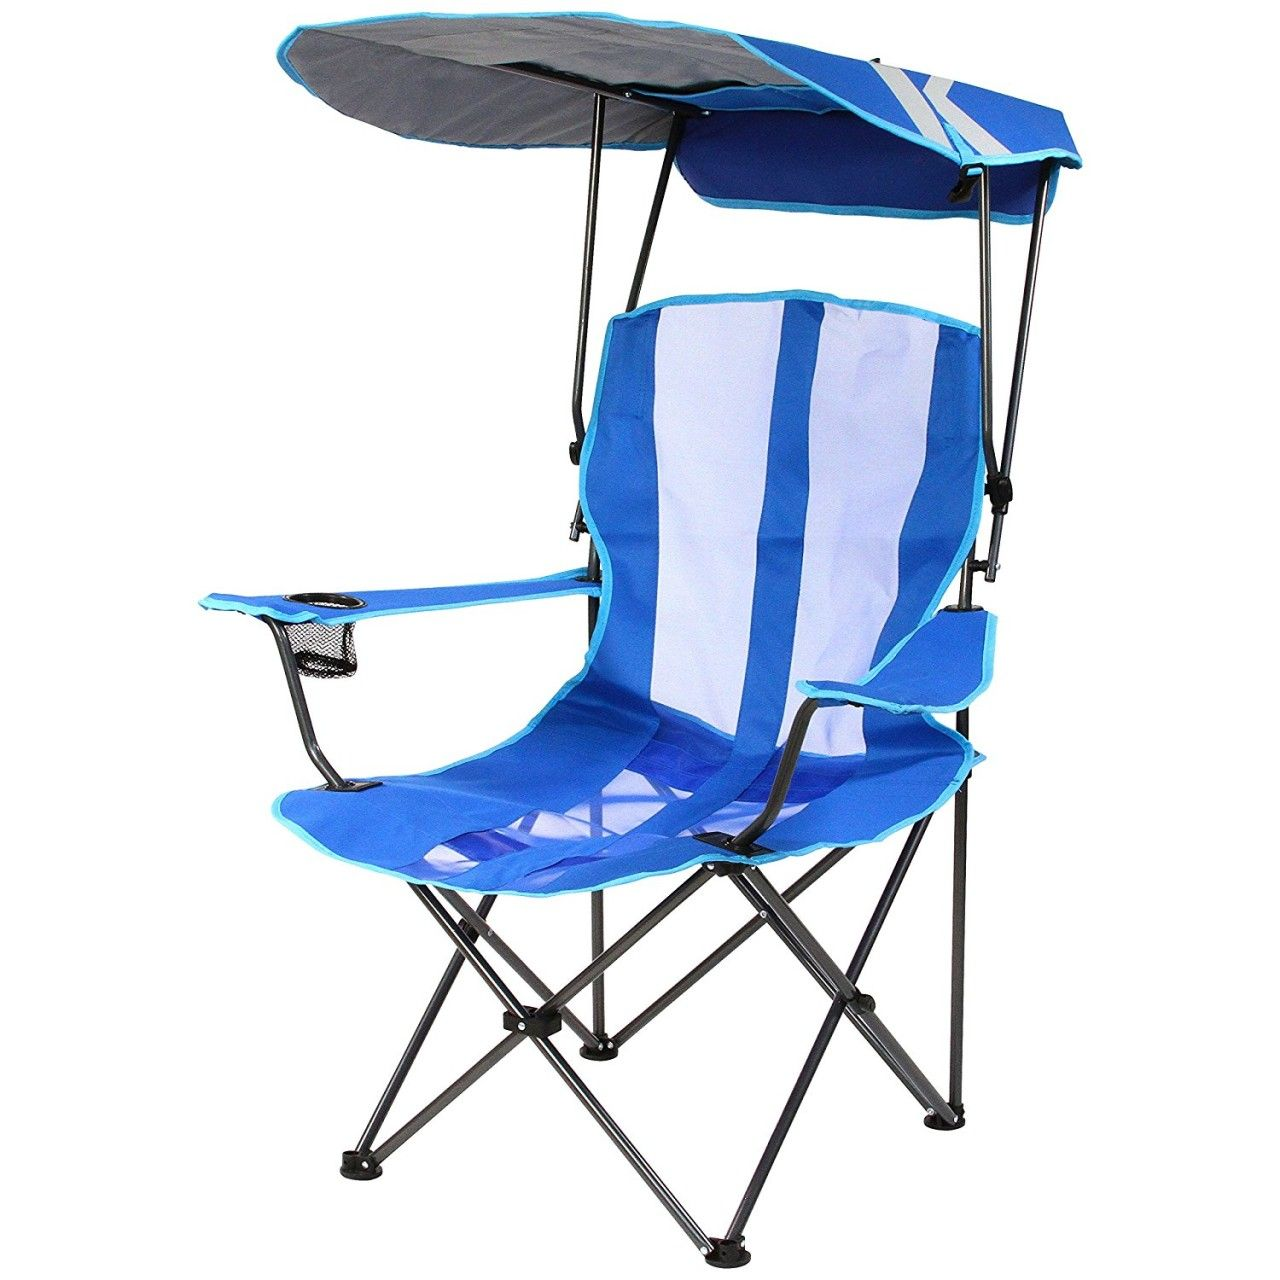 Kelsyus Original Canopy Chair 31 41 Shipped Camping Chairs